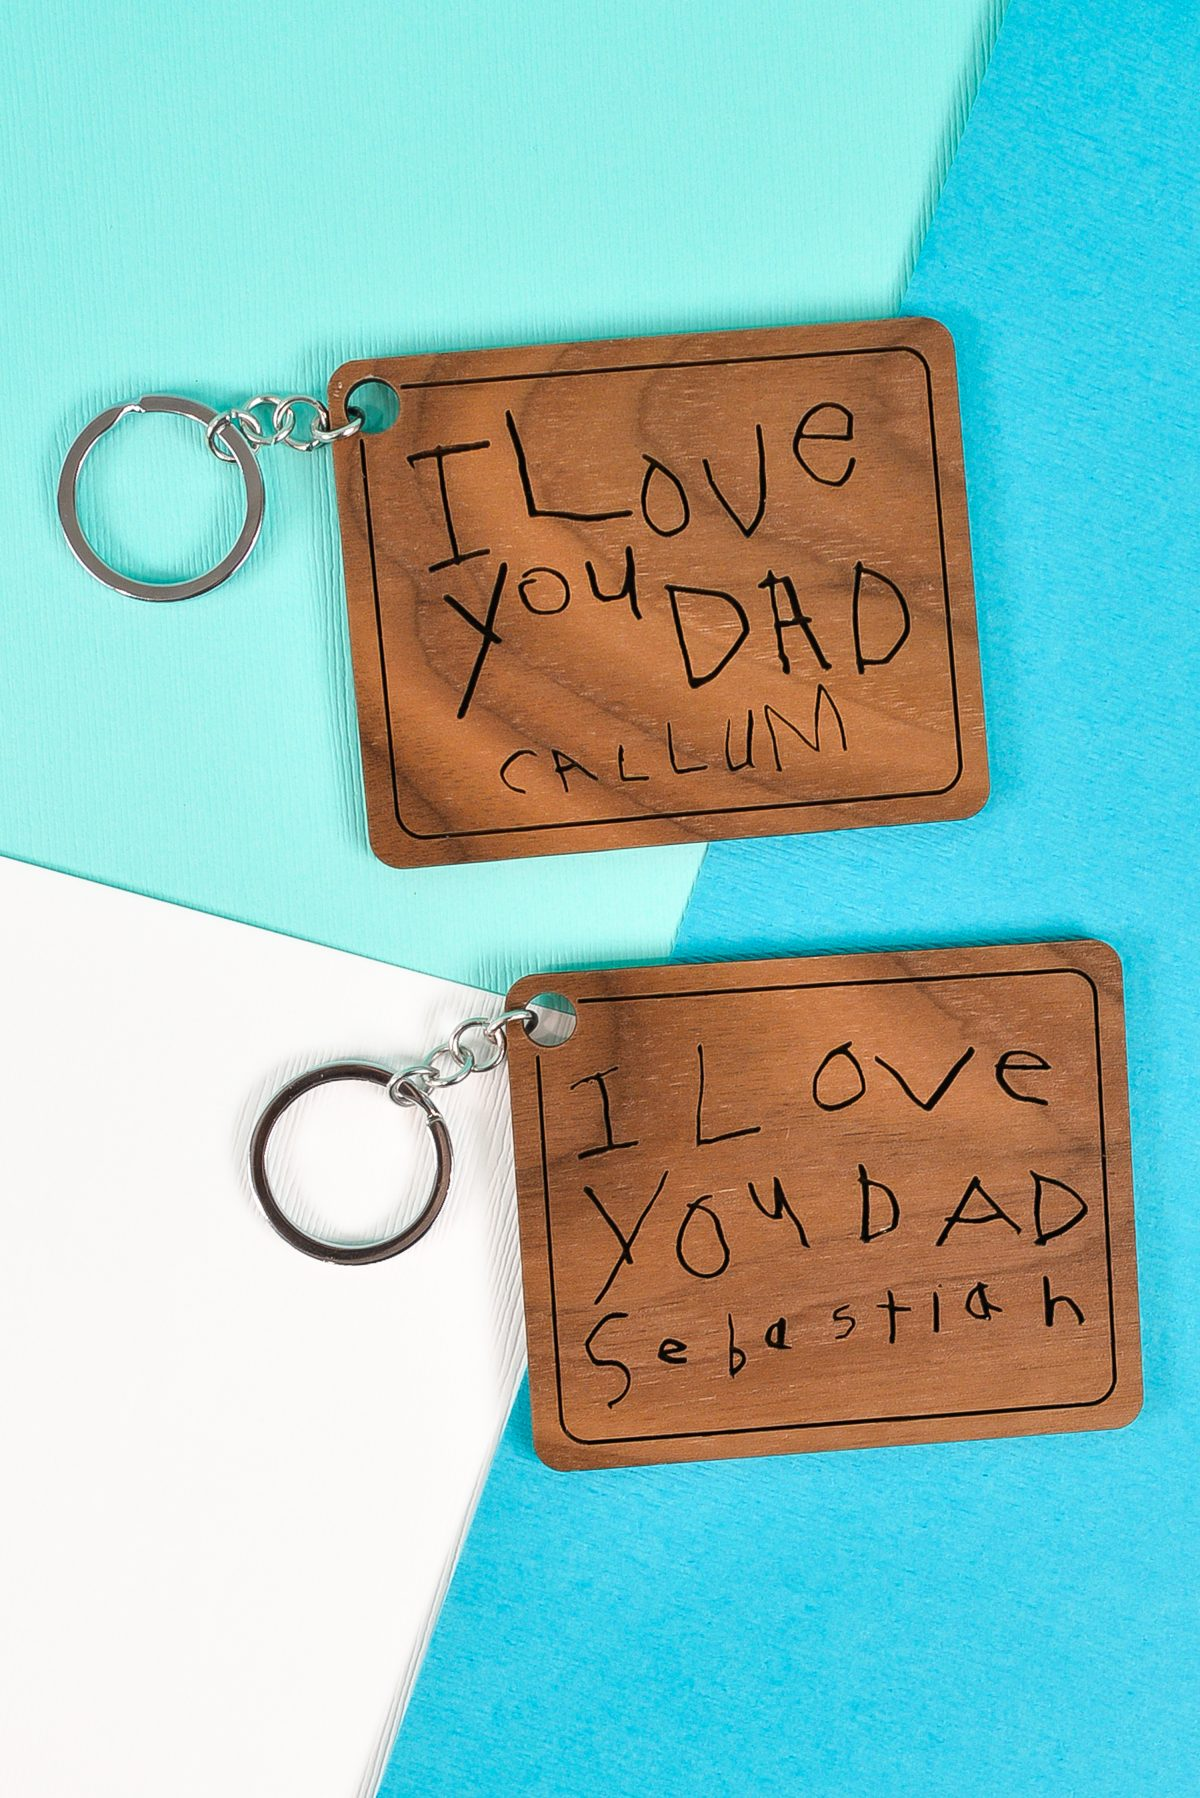 Finished keychains with child's handwriting made on a Glowforge